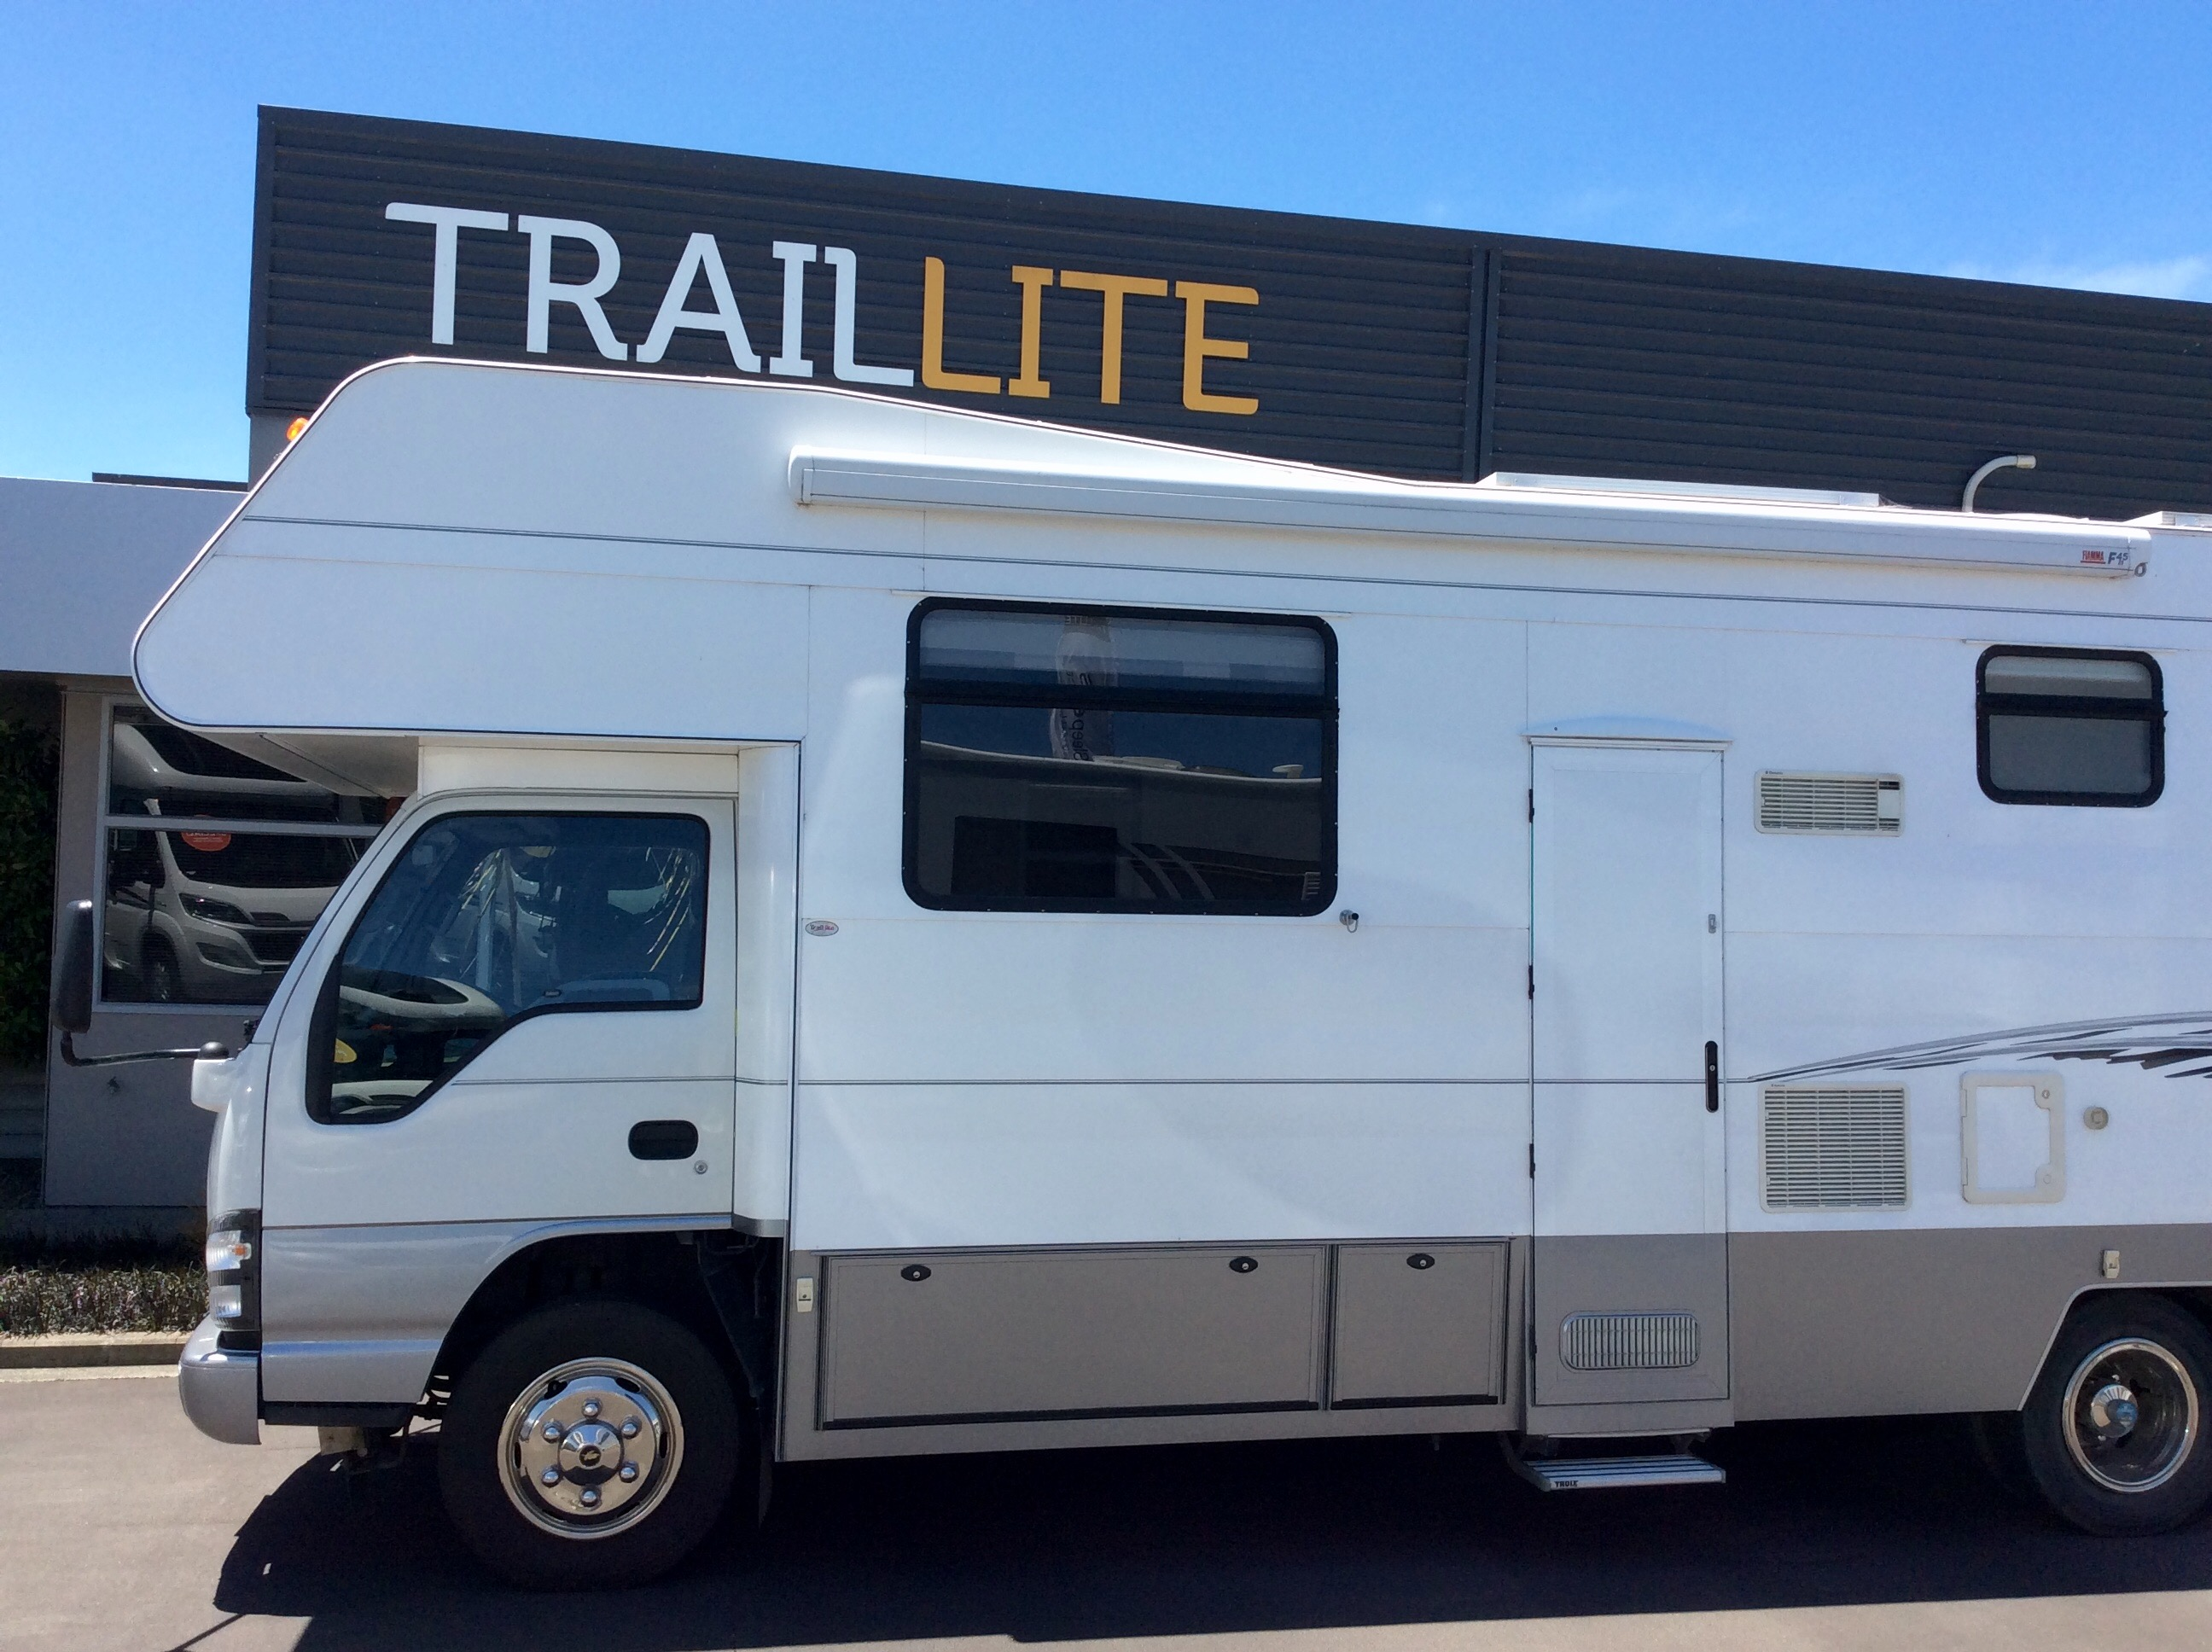 TrailLite motorhome second hand